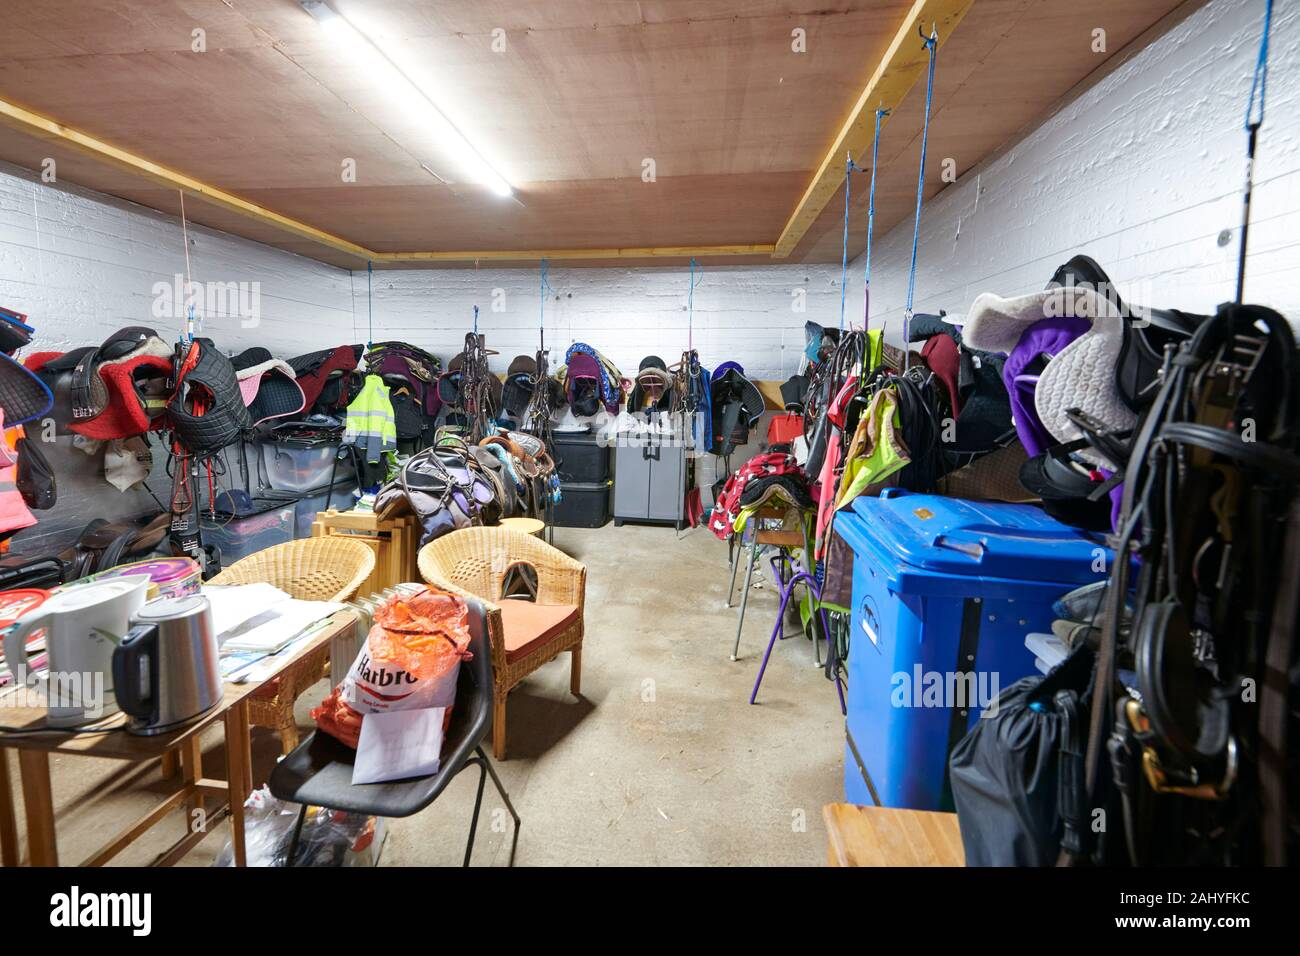 Tack Room High Resolution Stock Photography And Images Alamy